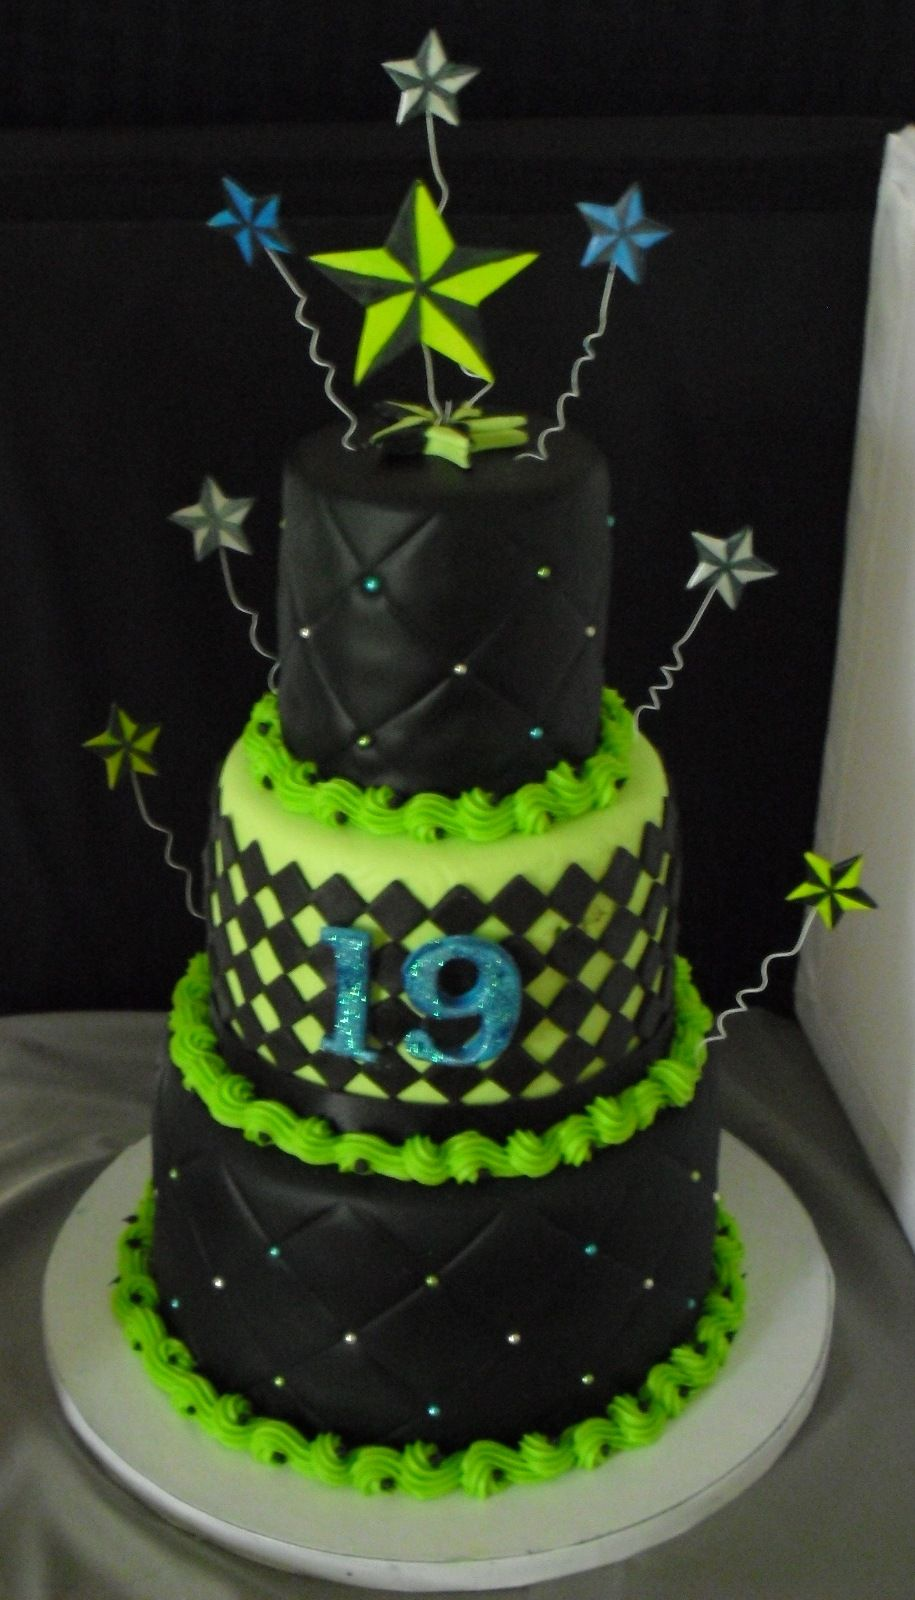 Nautical Star Cake Lime Green And Black Fondant With Blue Silver Hand Painted Stars